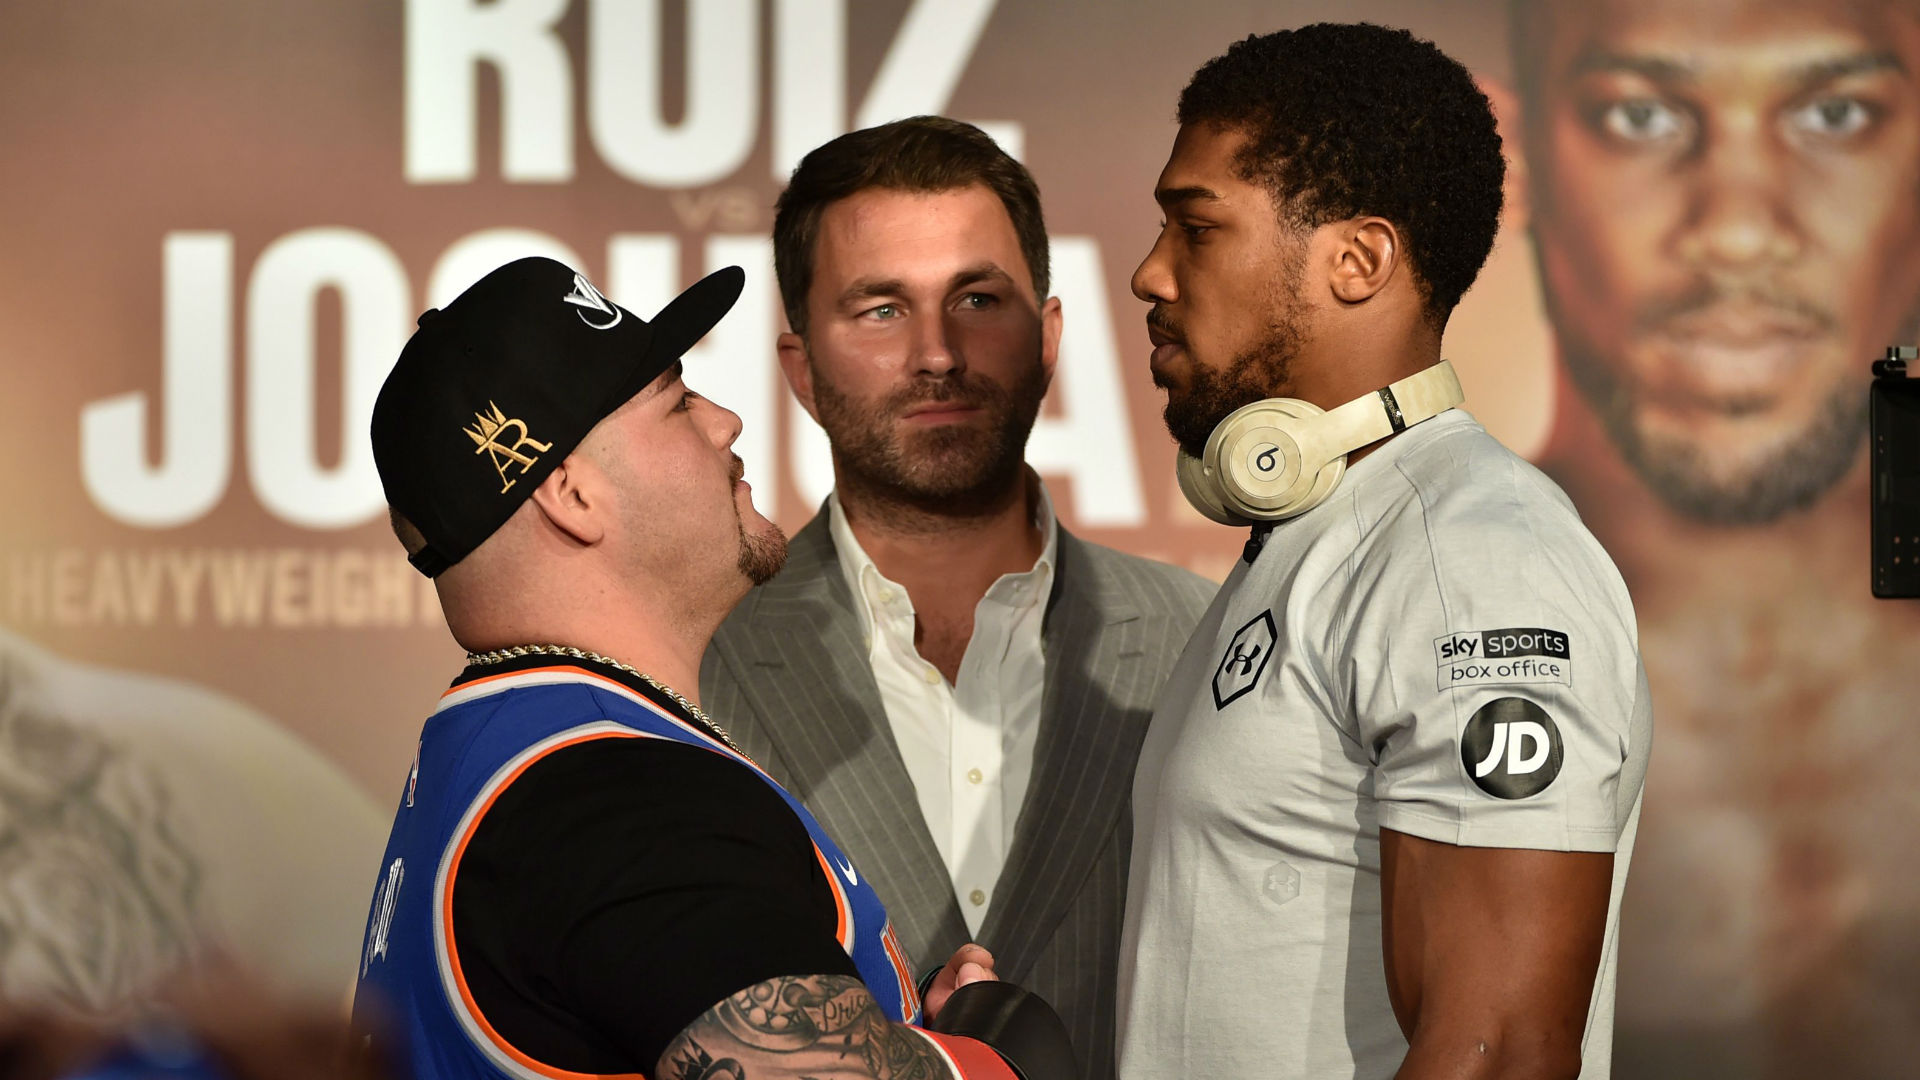 Andy Ruiz Jr Vs Anthony Joshua 2 How To Watch The Fight